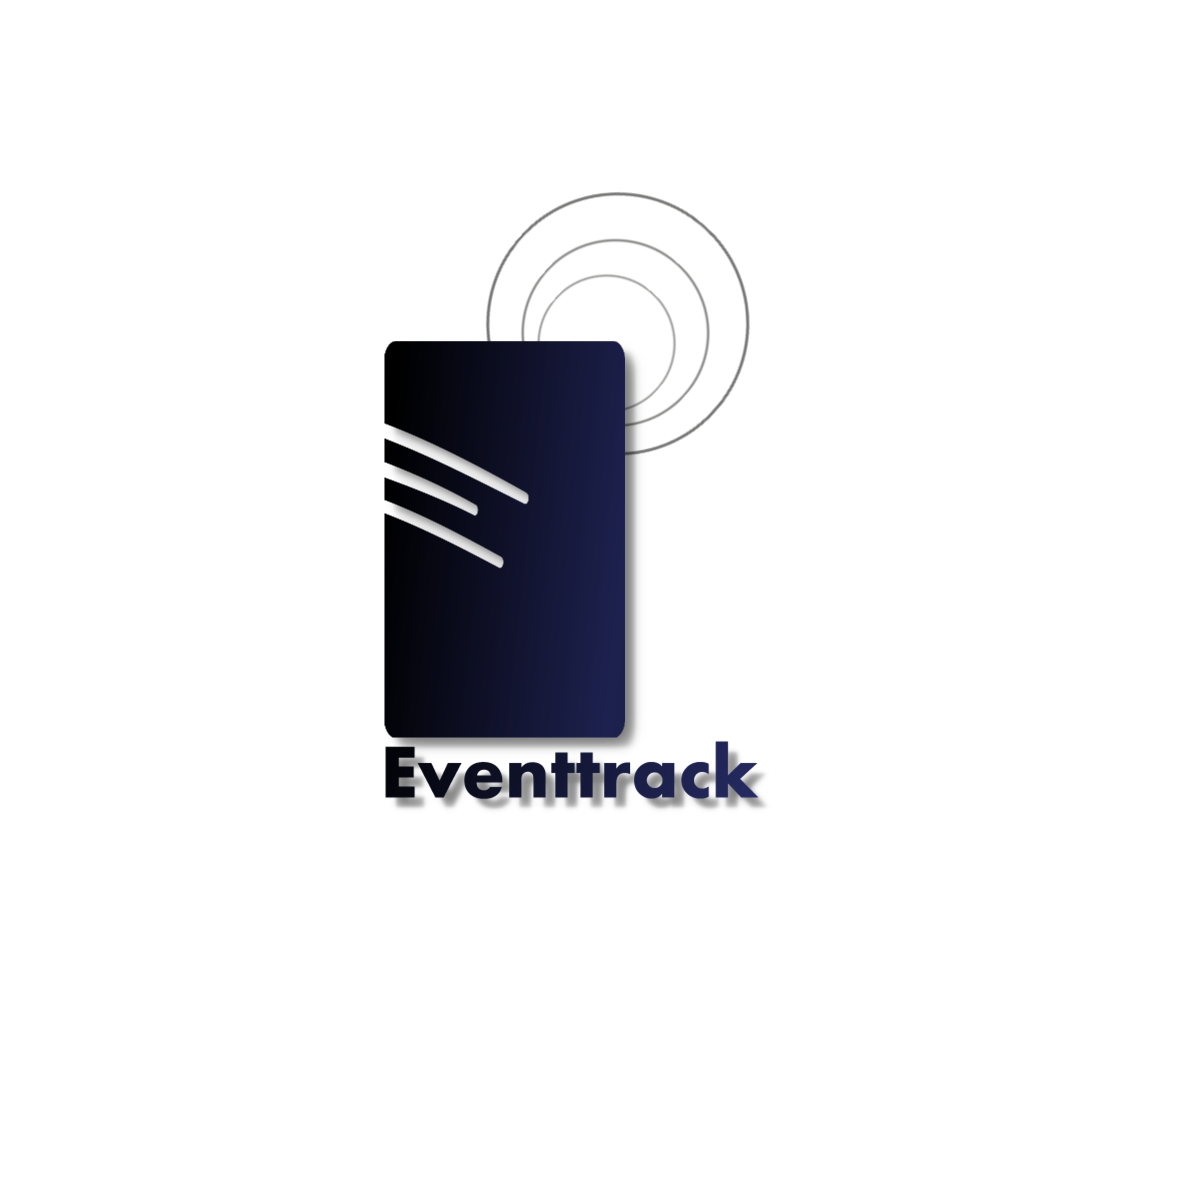 Eventtrack